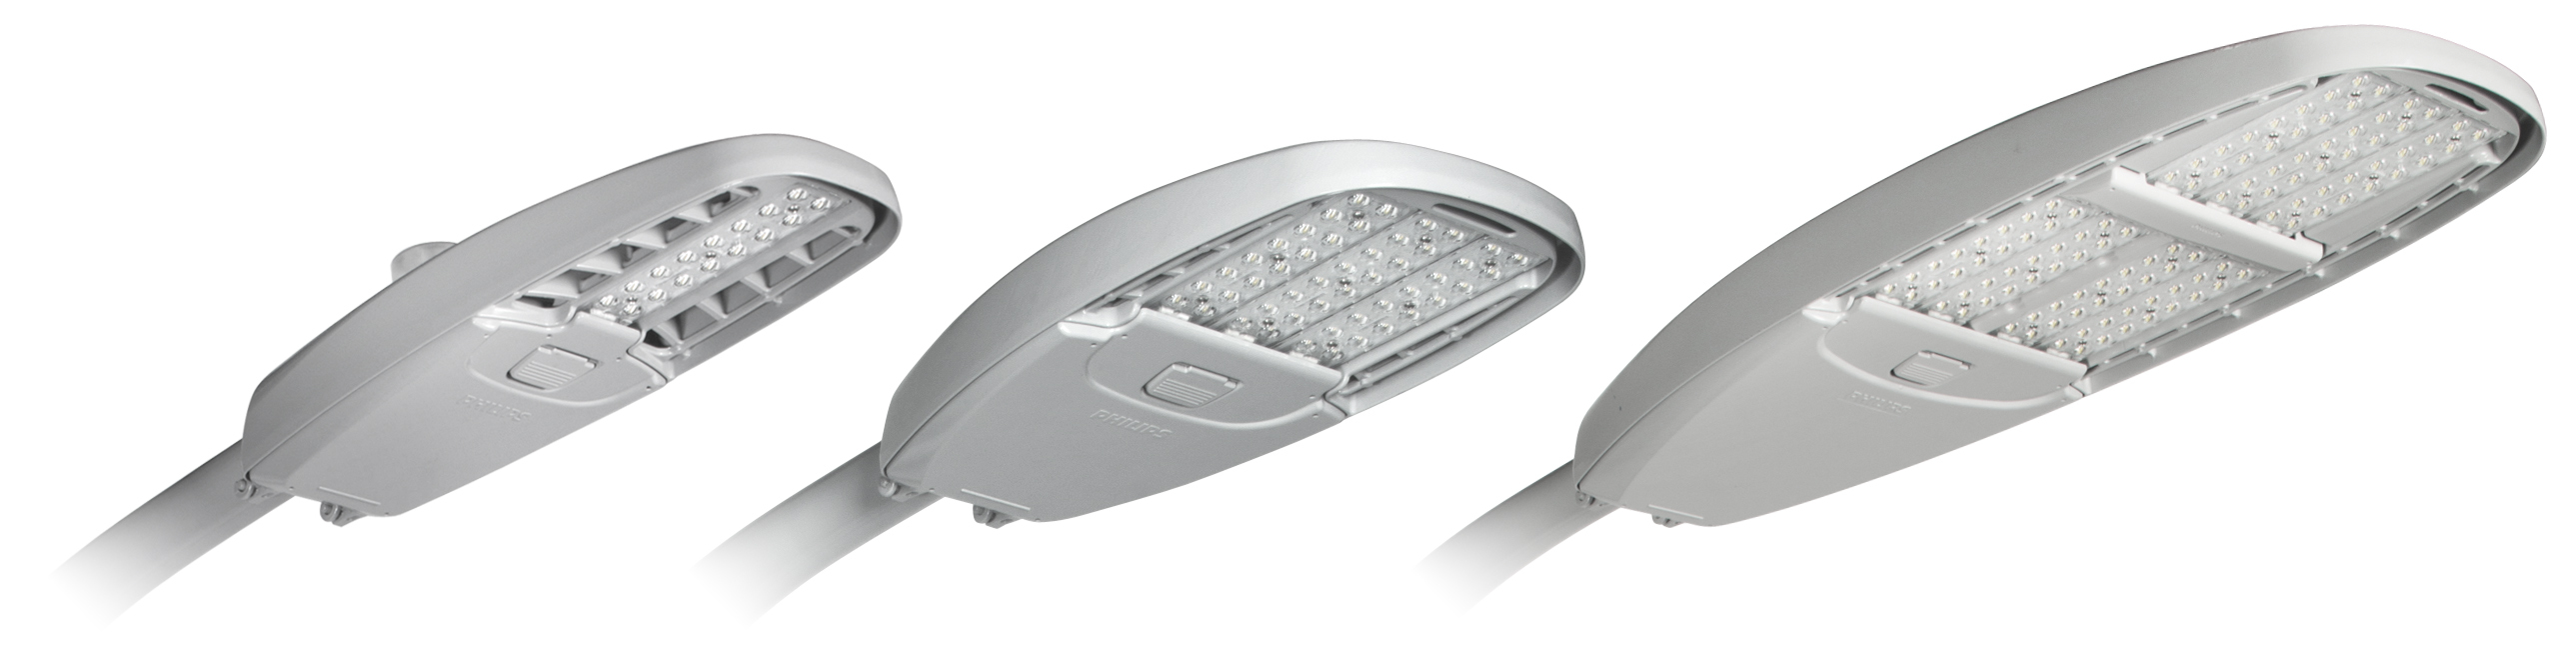 Philips Roadfocus Led Luminaires Shine A Light On Safety And